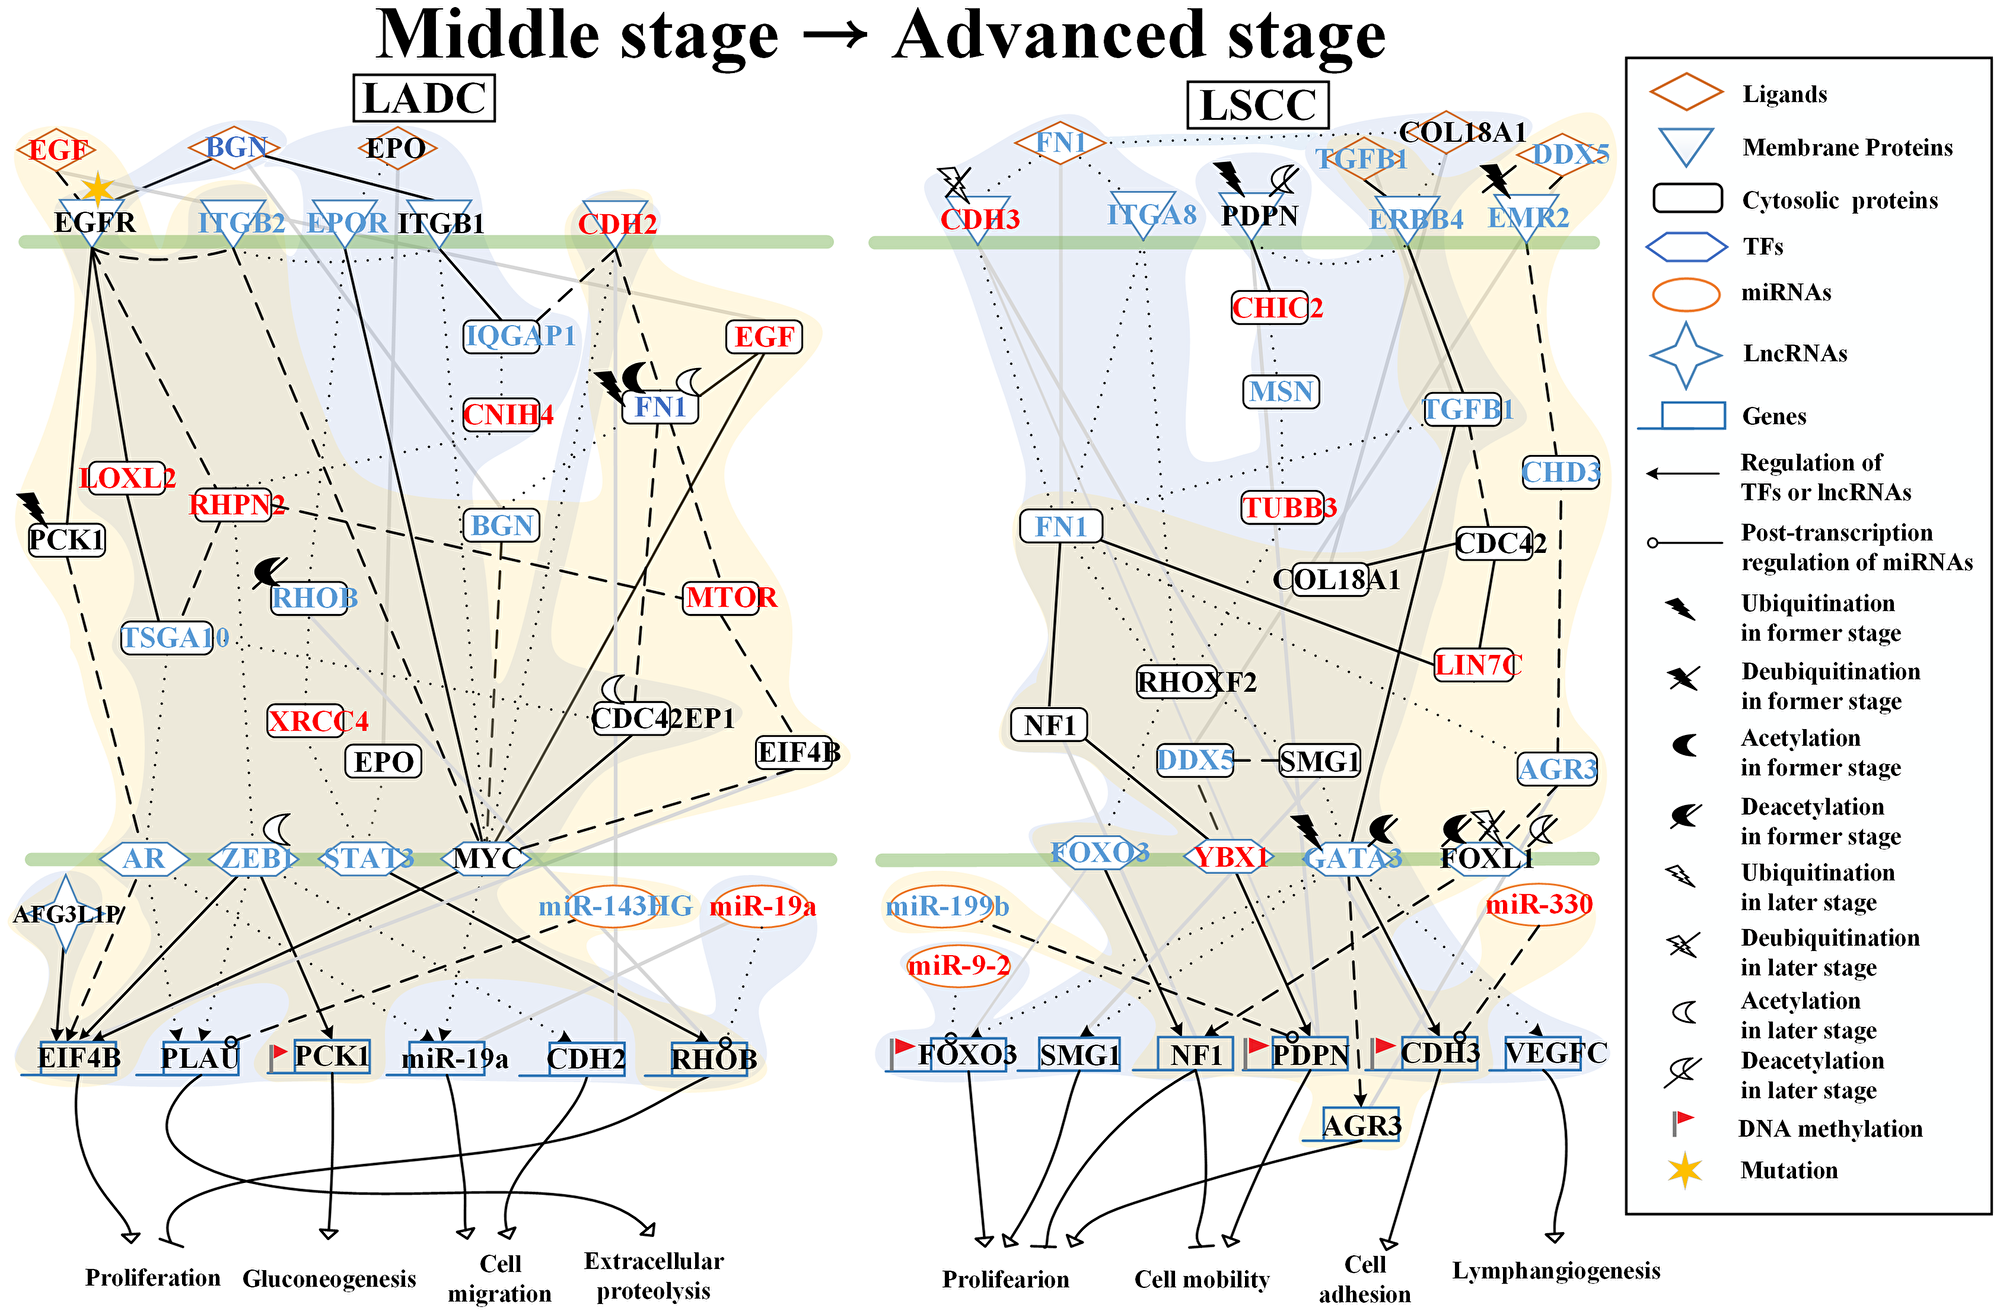 Core signaling pathways extracted from comparing genetic and epigenetic networks (GENs) between middle stage and advanced stage LADC and LSCC.